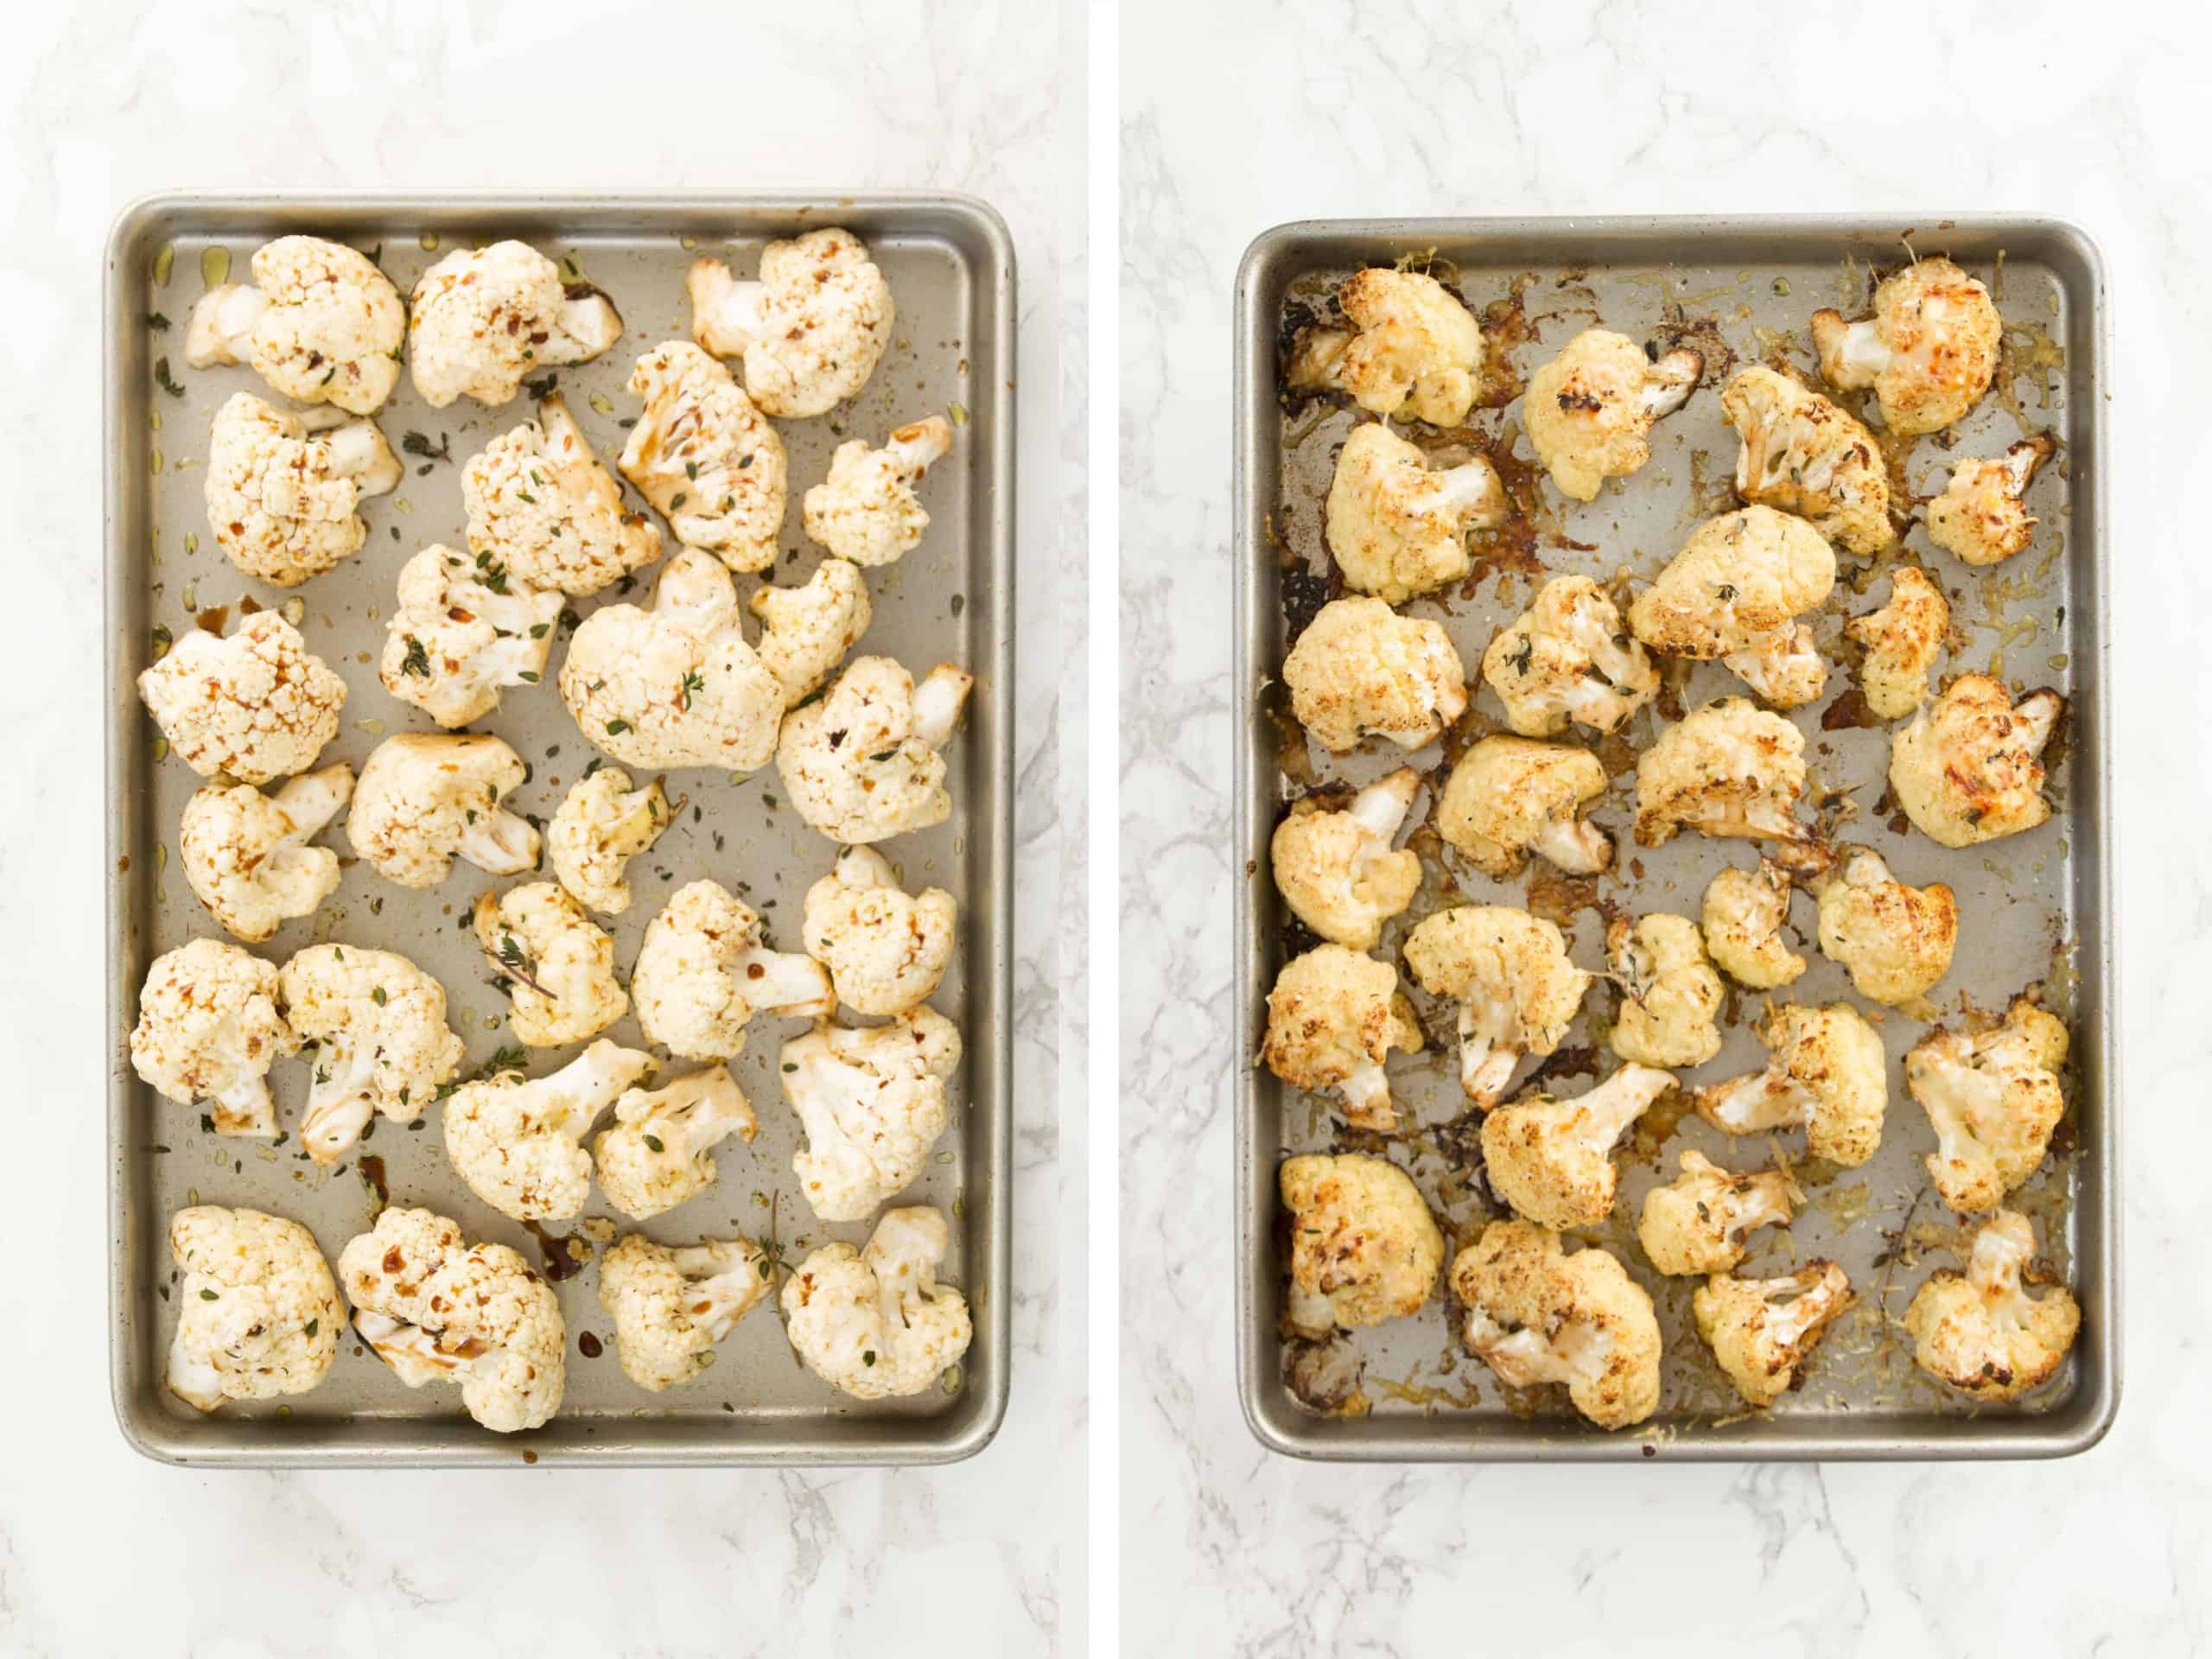 Balsamic cauliflower florets arranged over a baking pan, before and after baking.